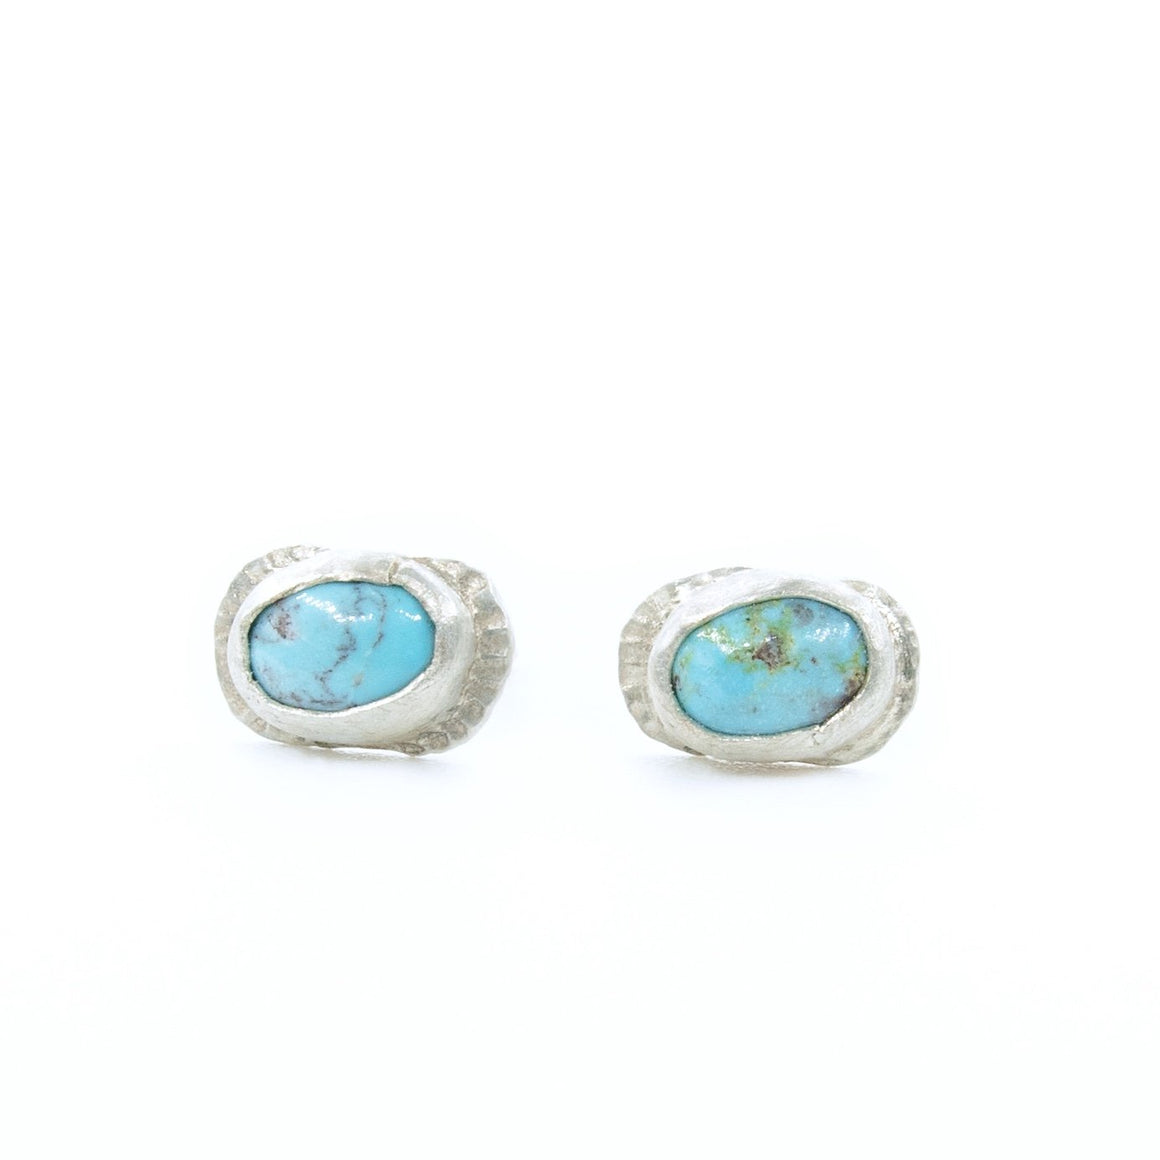 Fine Silver Bisbee Turquoise Stud Earrings